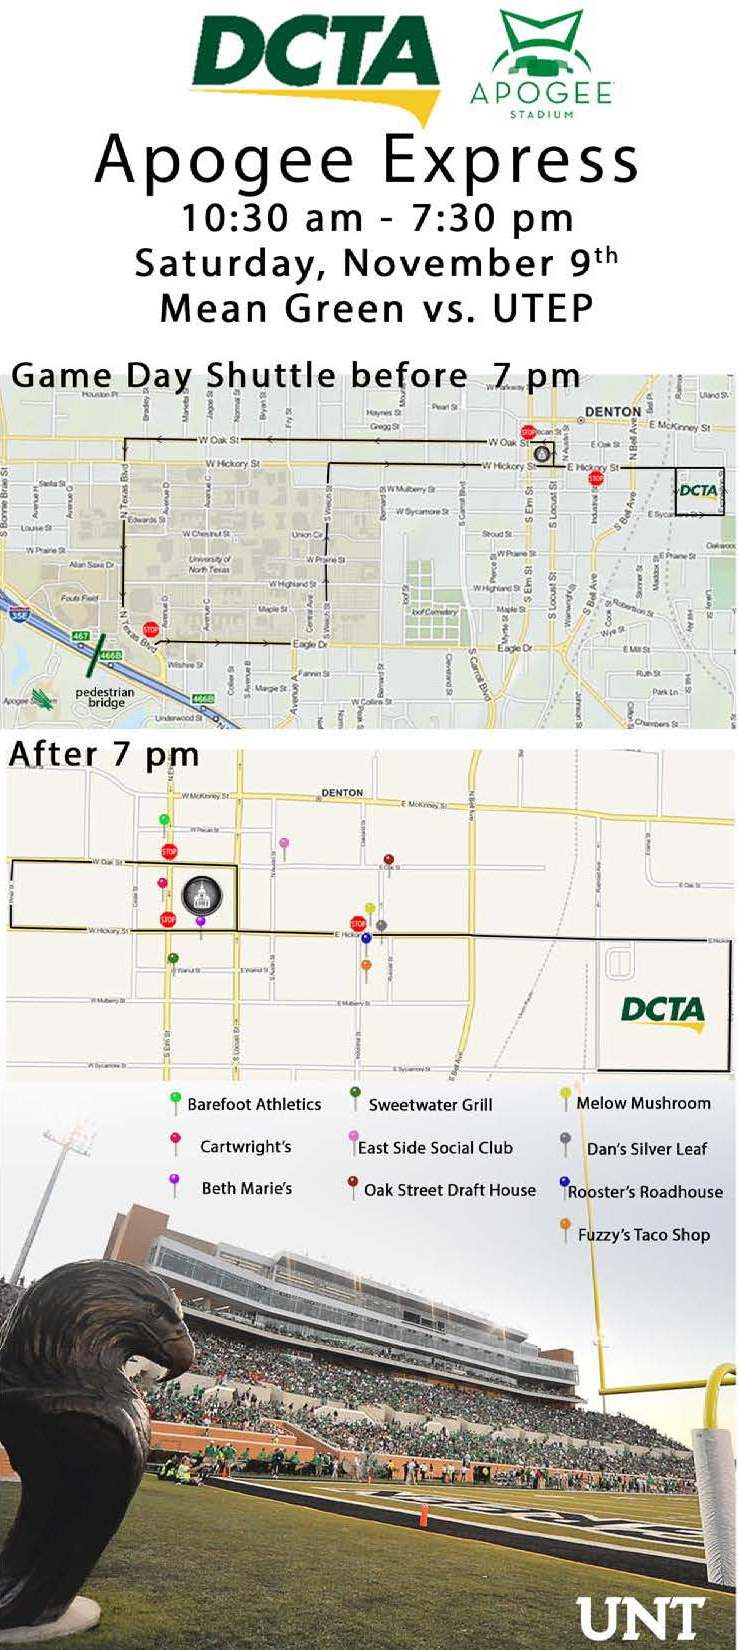 Apogee Express, DCTA, North Texas, Mean Green, Downtown Denton